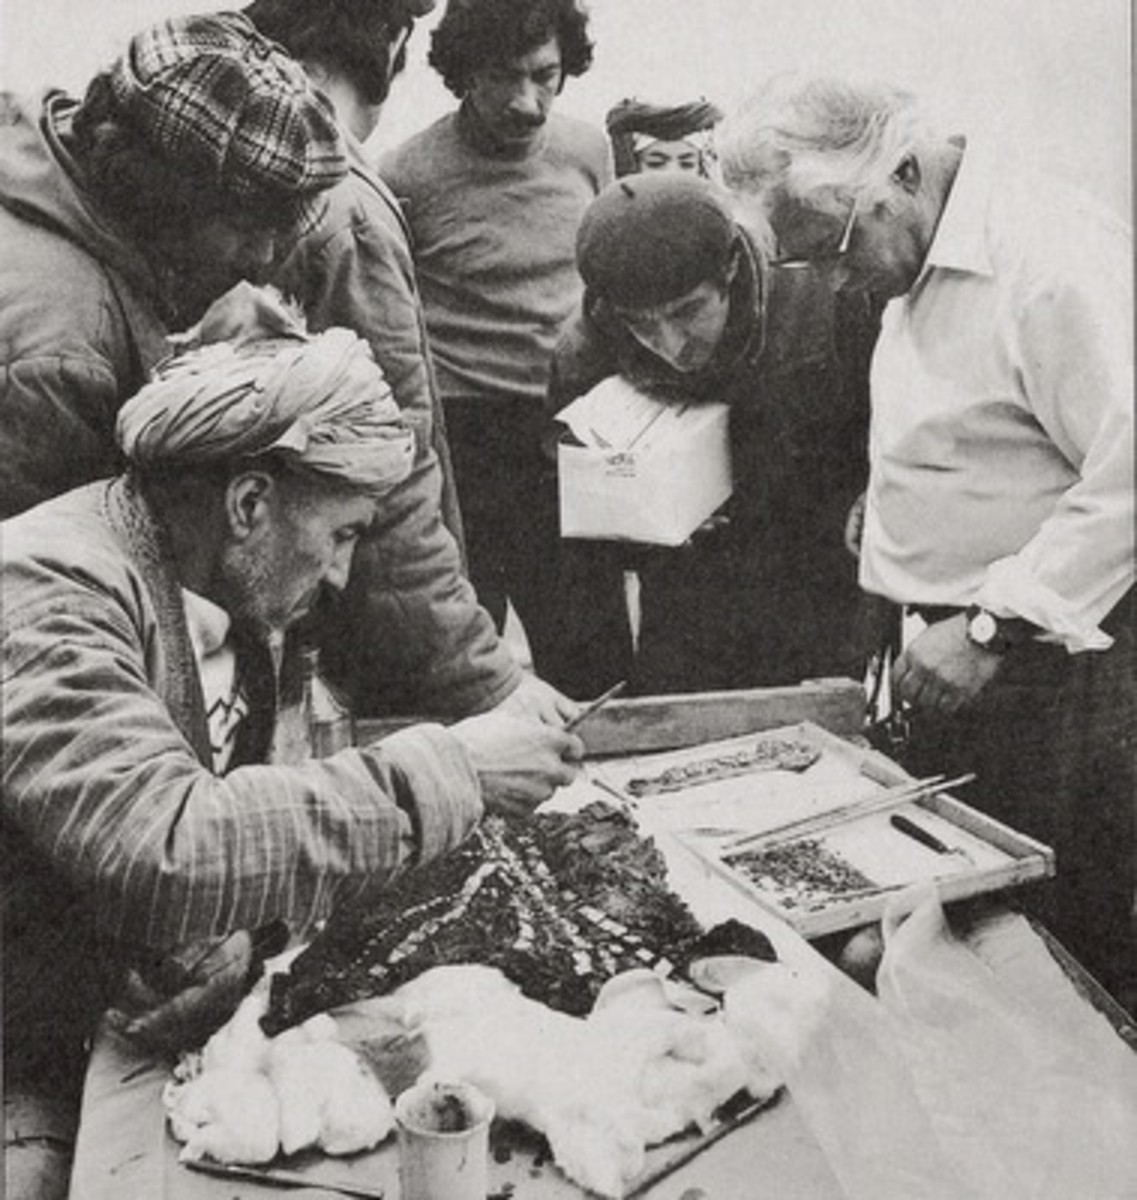 Excavations at Tillya Tepe 1978 by Russian archaeologist Viktor Sarianidis - Six golden burials from the second quarter of the 1st century AD were found amongst the ruins of an older Bronze Age fortress - © Viktor Sarianidi, National Museum of Afghan